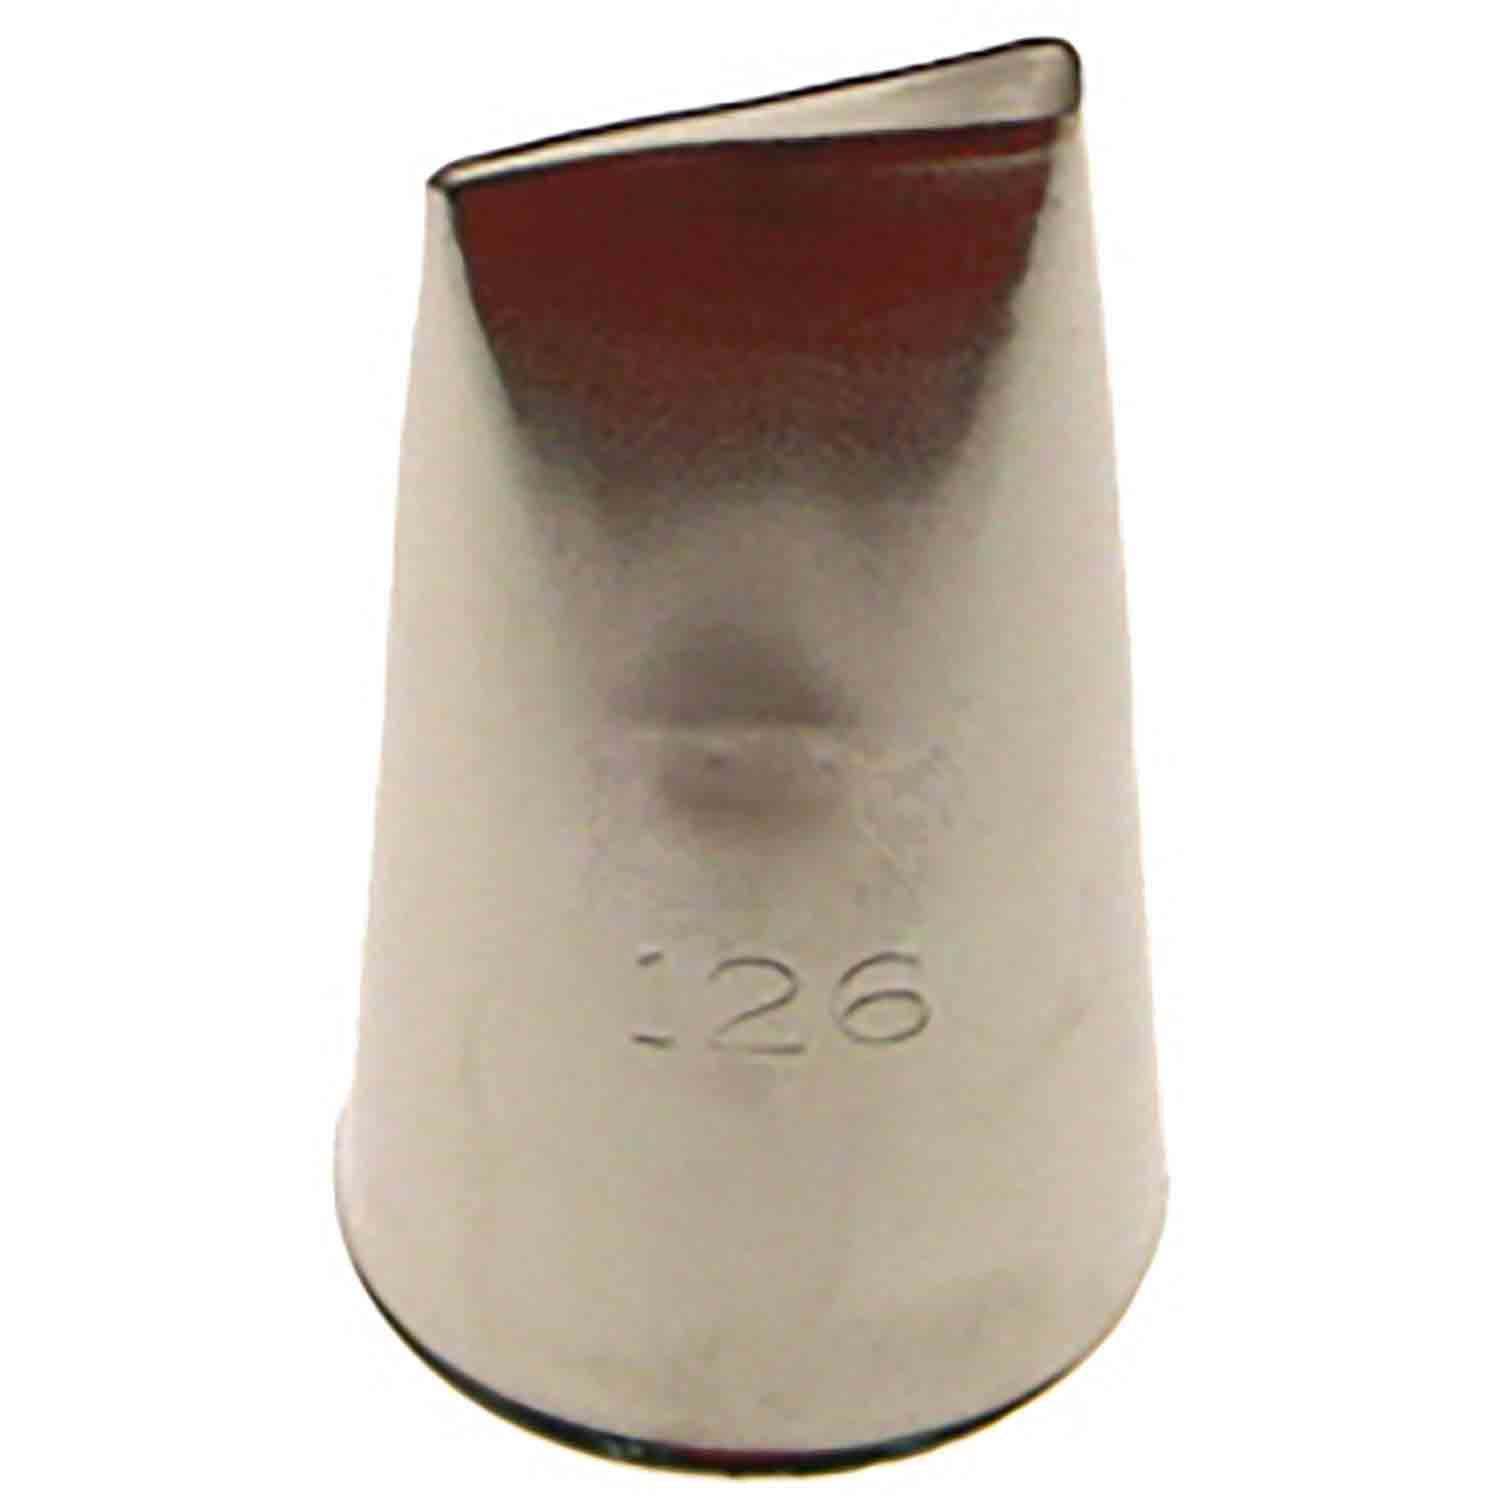 #126 Petal Stainless Steel Tip